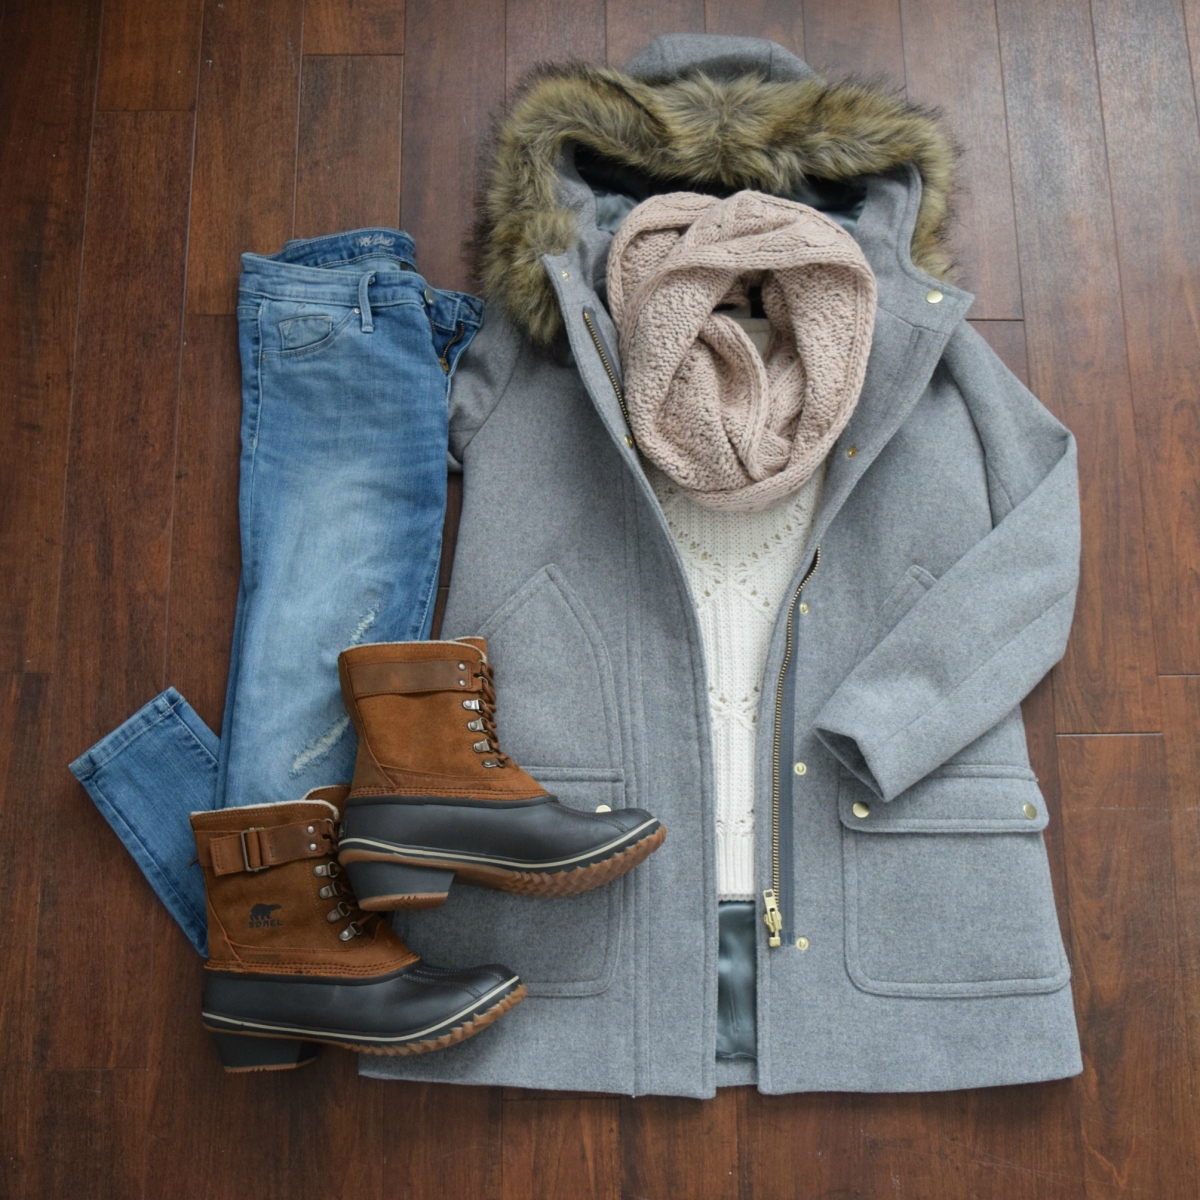 J. Crew Factory Vail Parka and Sorel snow boots: chic style for winter